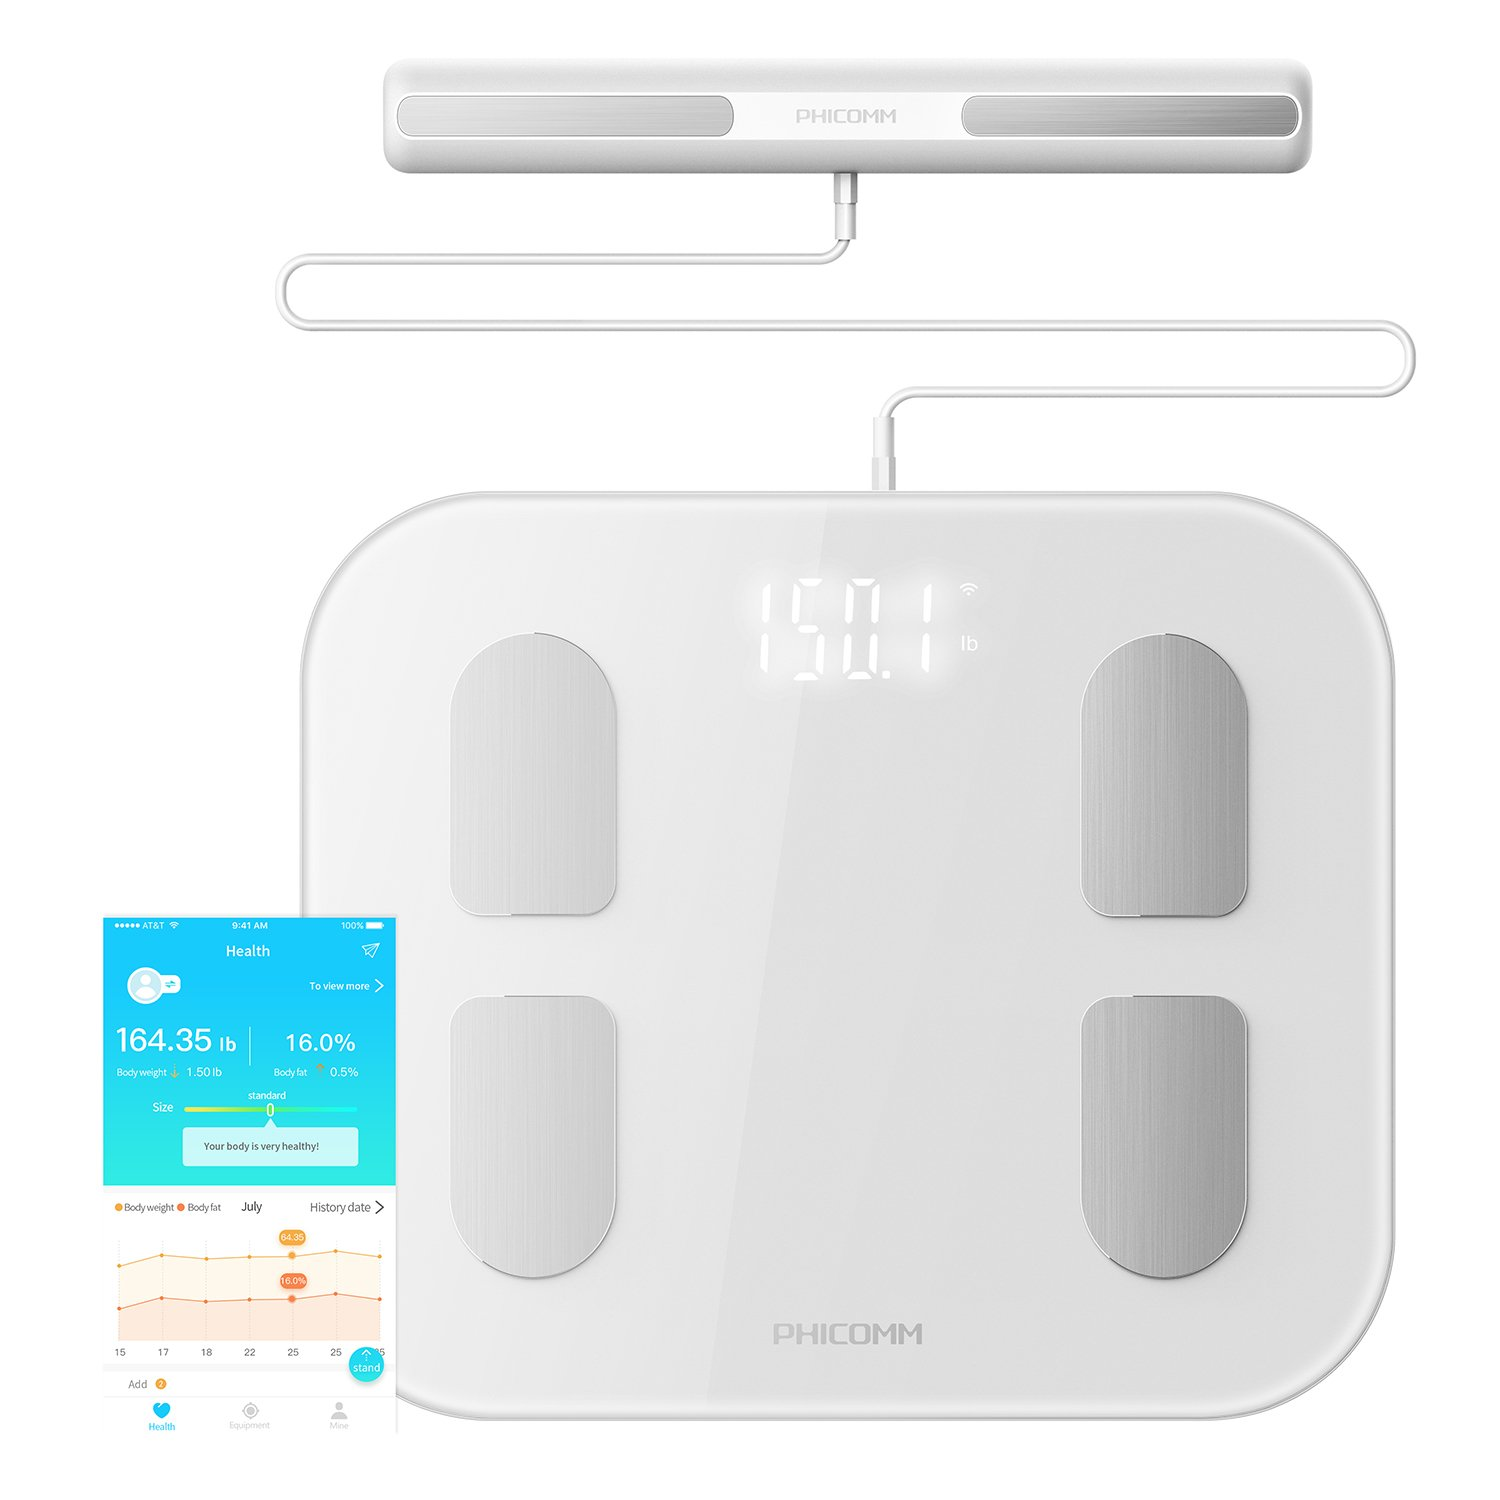 PHICOMM S7 Smart Body Fat Weight Scale with Fitness App & Body Composition Monitor, 22 Indicators (Pearl White) by Phicomm